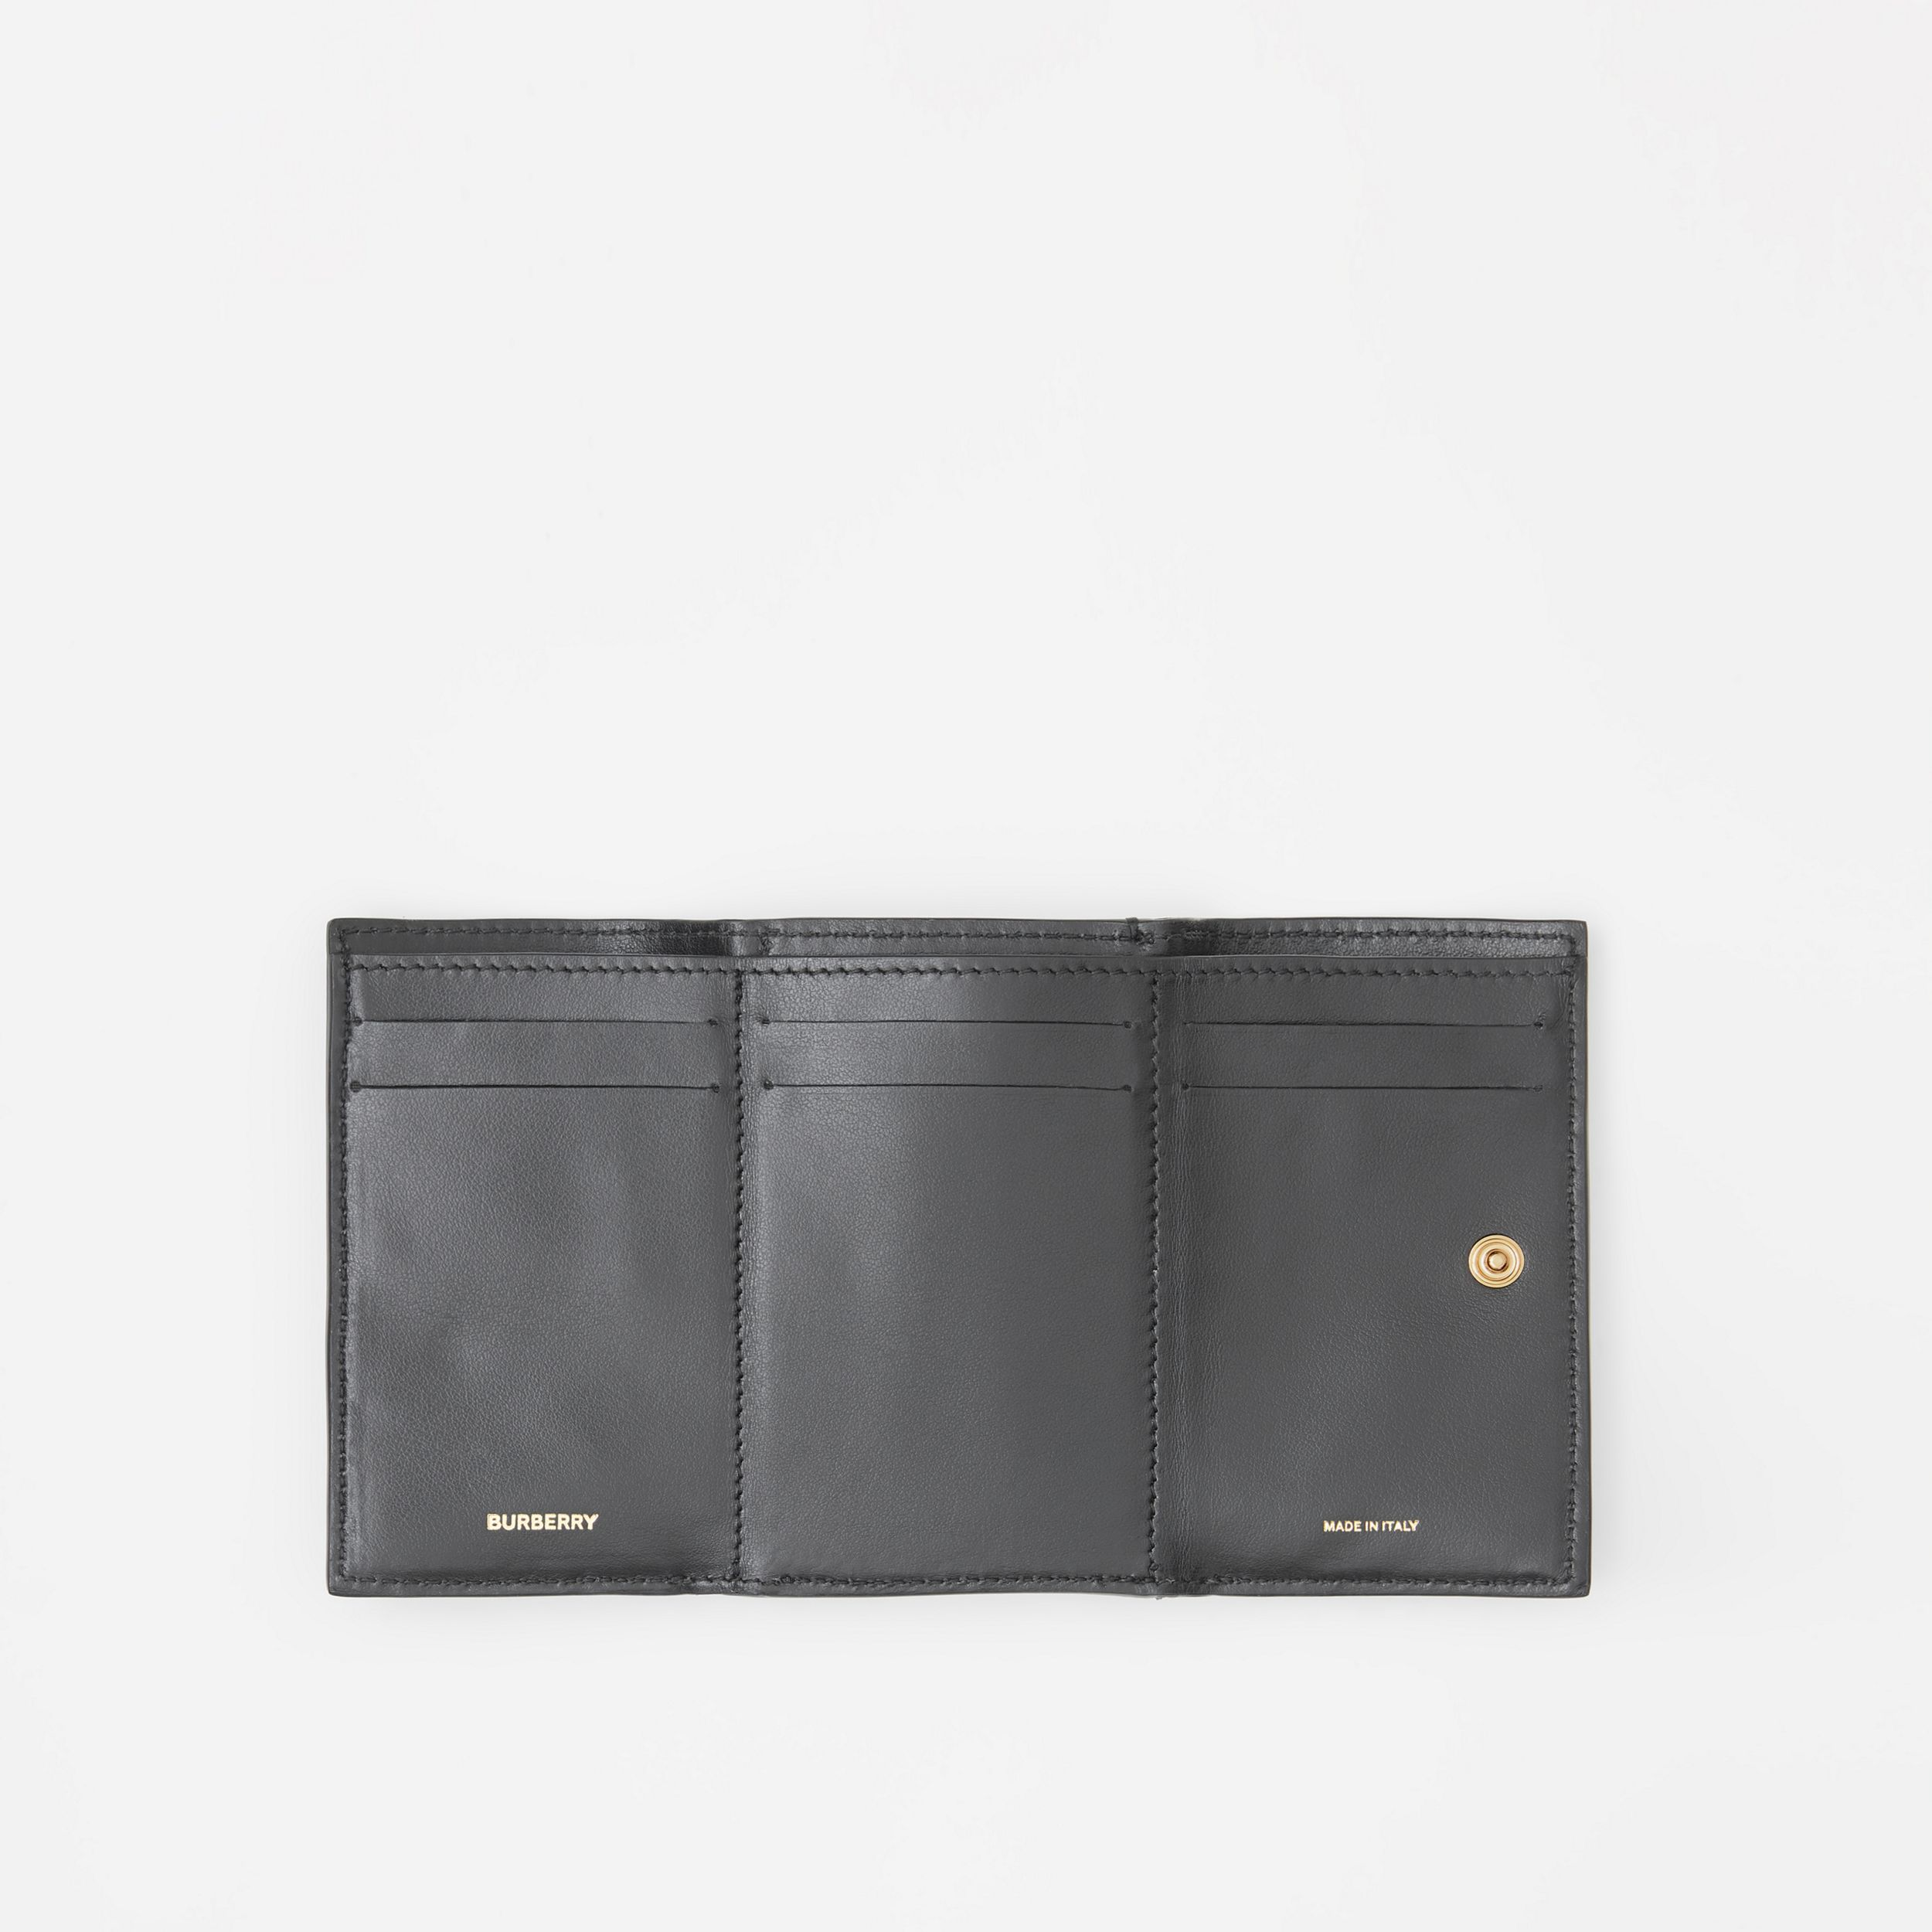 Small Grainy Leather Folding Wallet in Black - Women | Burberry - 3